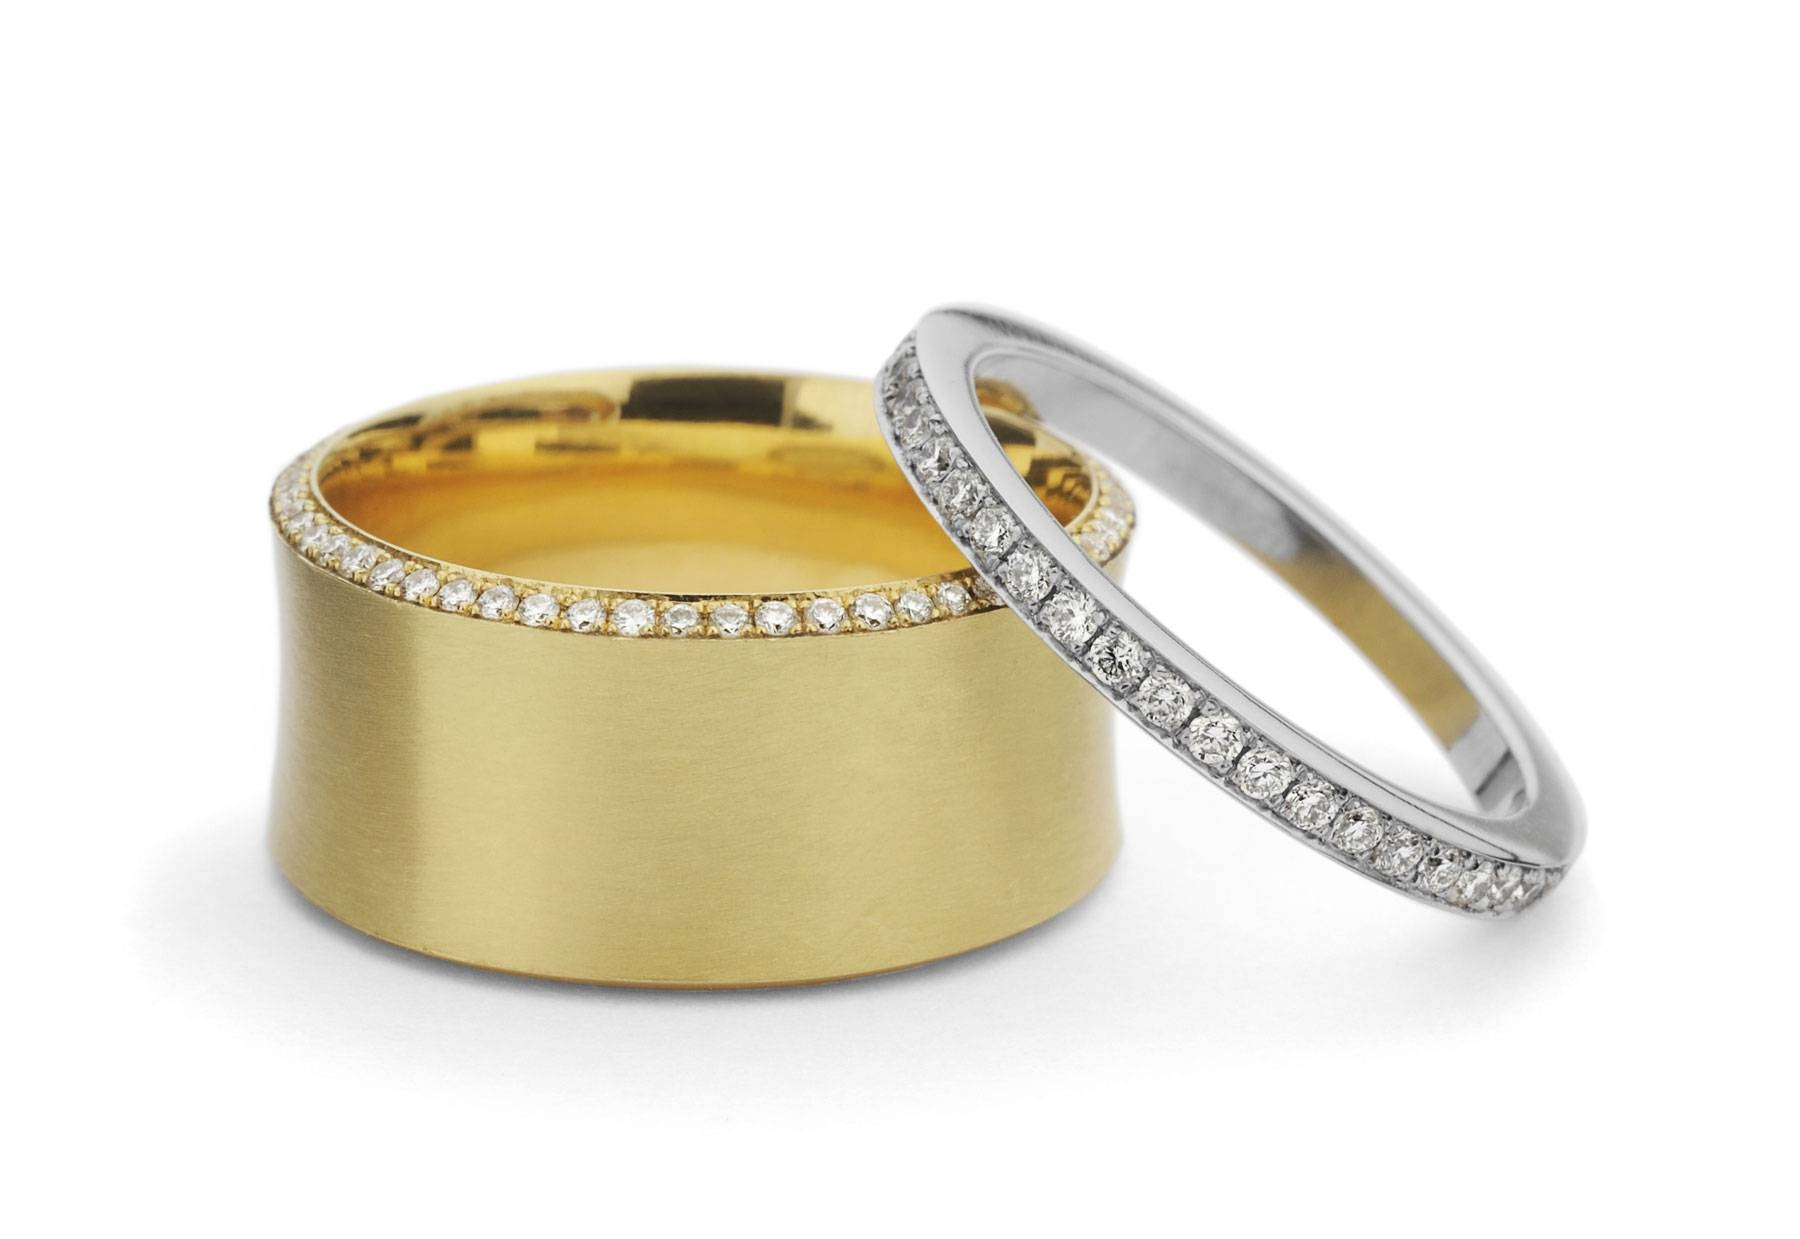 18 Carat Yellow Gold & Platinum Wedding And Eternity Bands With Regard To Latest 18 Carat Gold Wedding Bands (View 6 of 16)